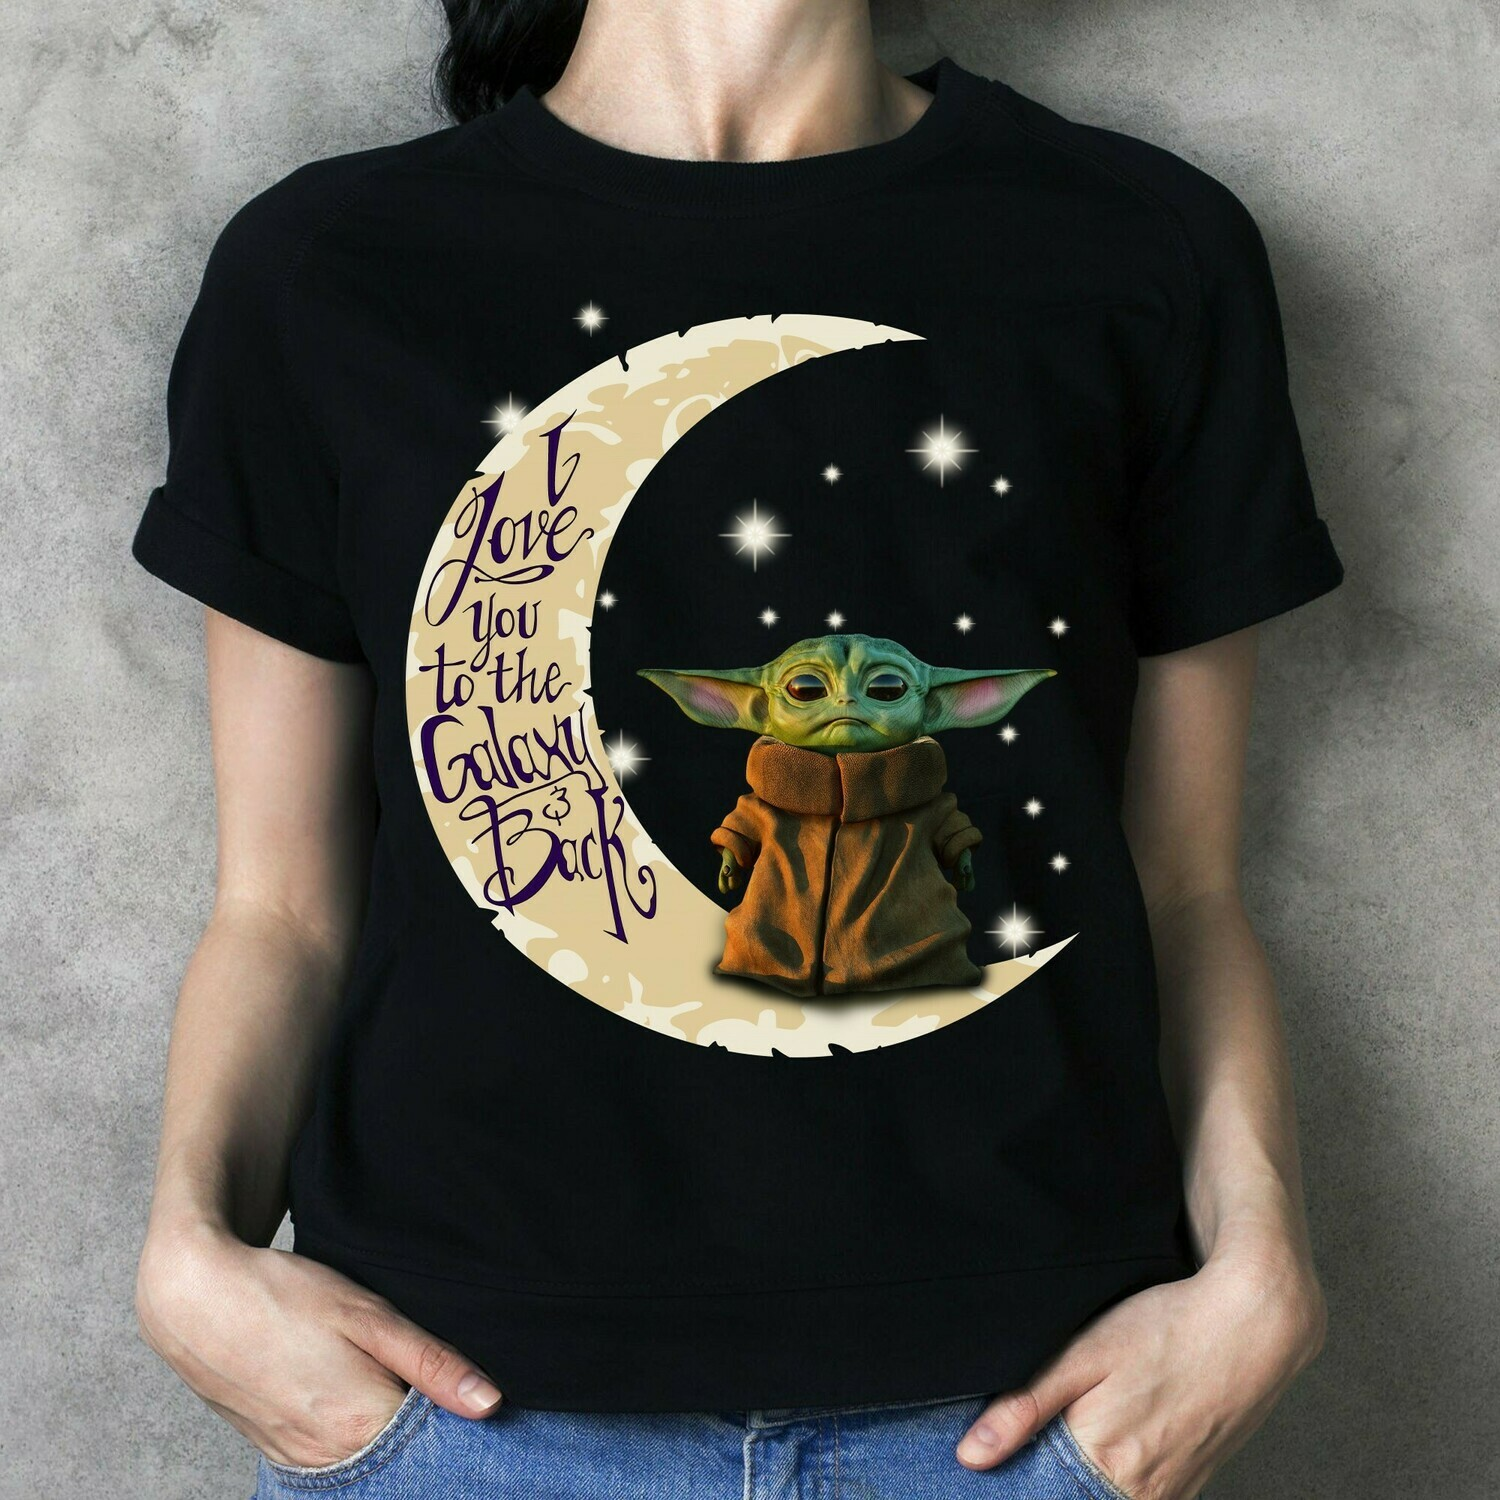 Baby Yoda I love you to the Galaxy and Back The Mandalorian with death Star Wars Movie gift  T-Shirt Hoodie Sweatshirt Sweater Tee Kids Youth Gifts Jolly Family Gifts